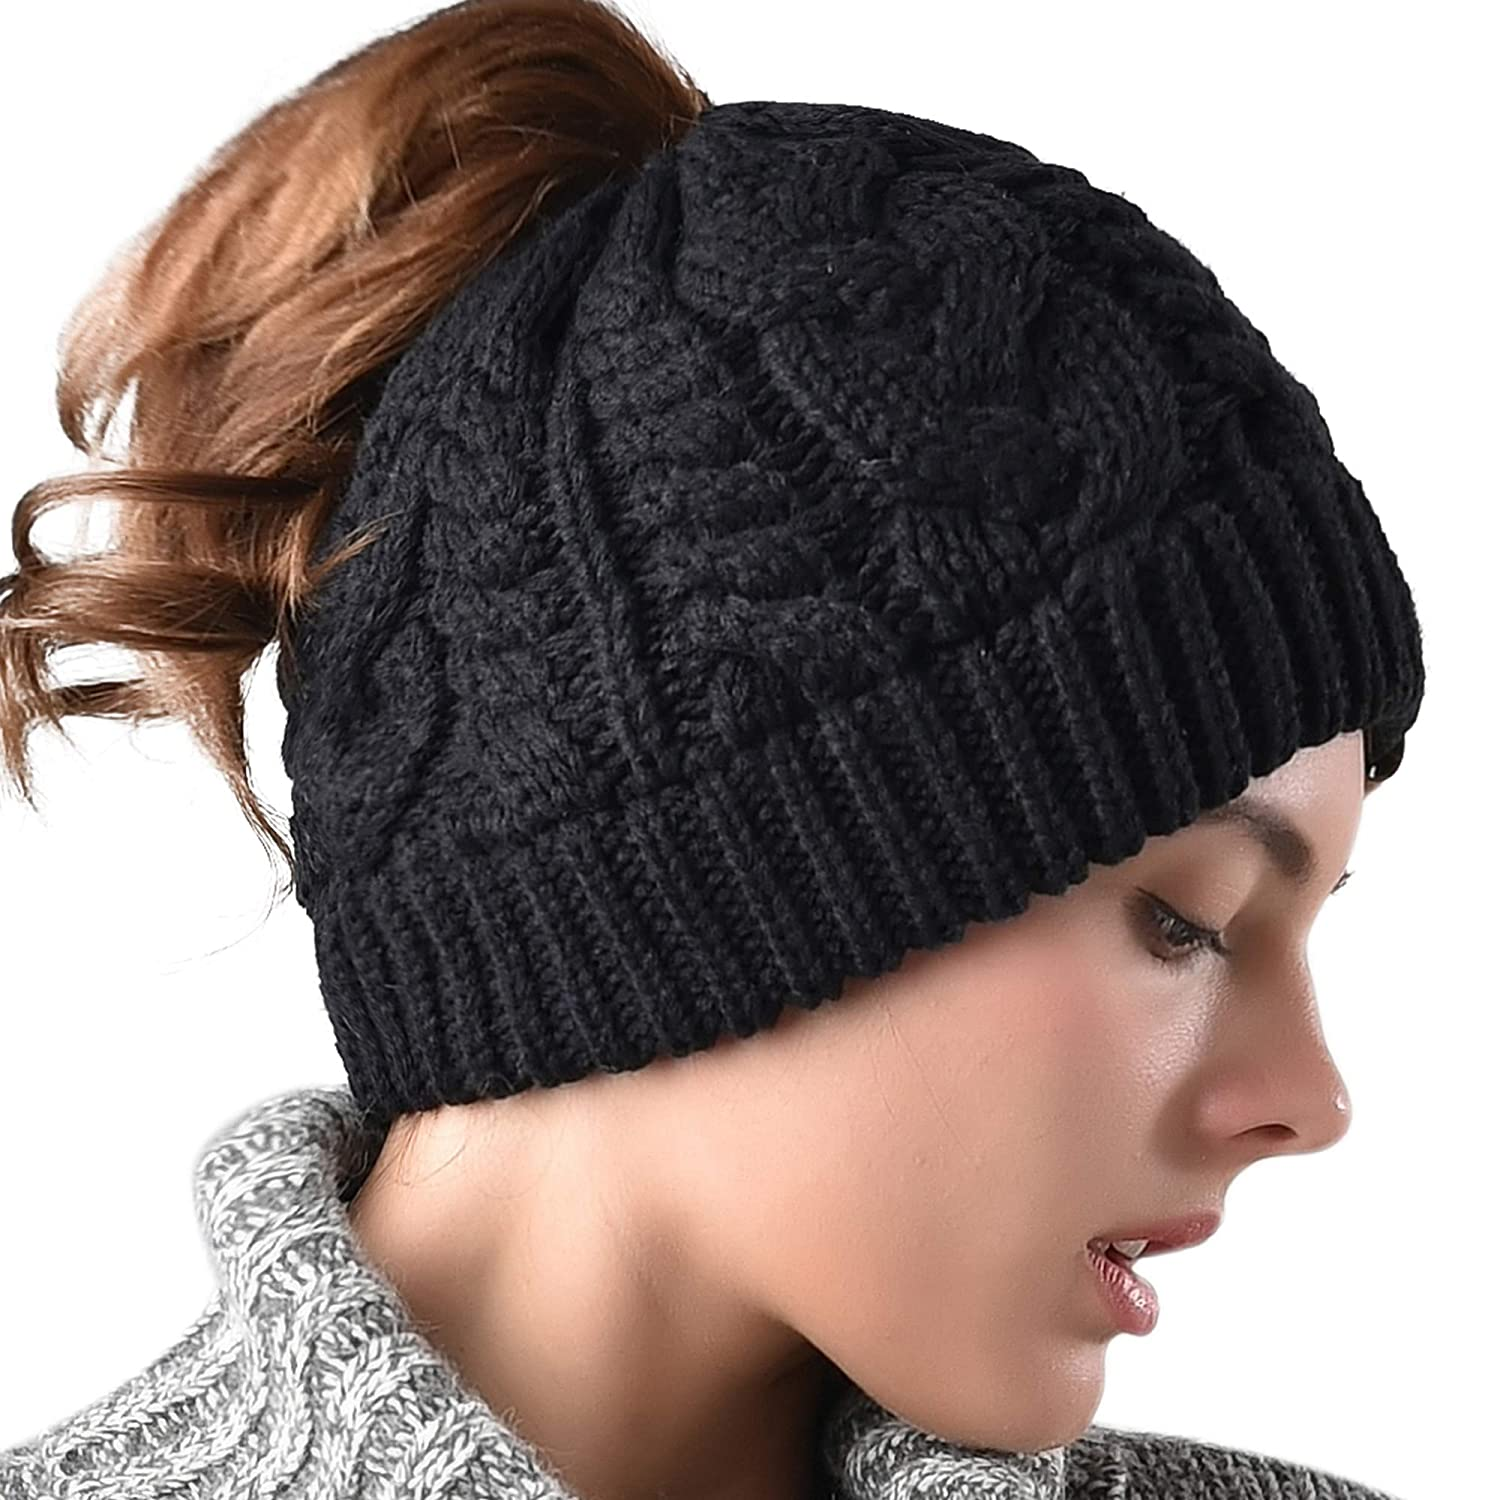 e92ba4c49f3 Women Hat Knit Skull Beanie Winter Outdoor Runner Messy Bun Ponytail Cap at  Amazon Women s Clothing store